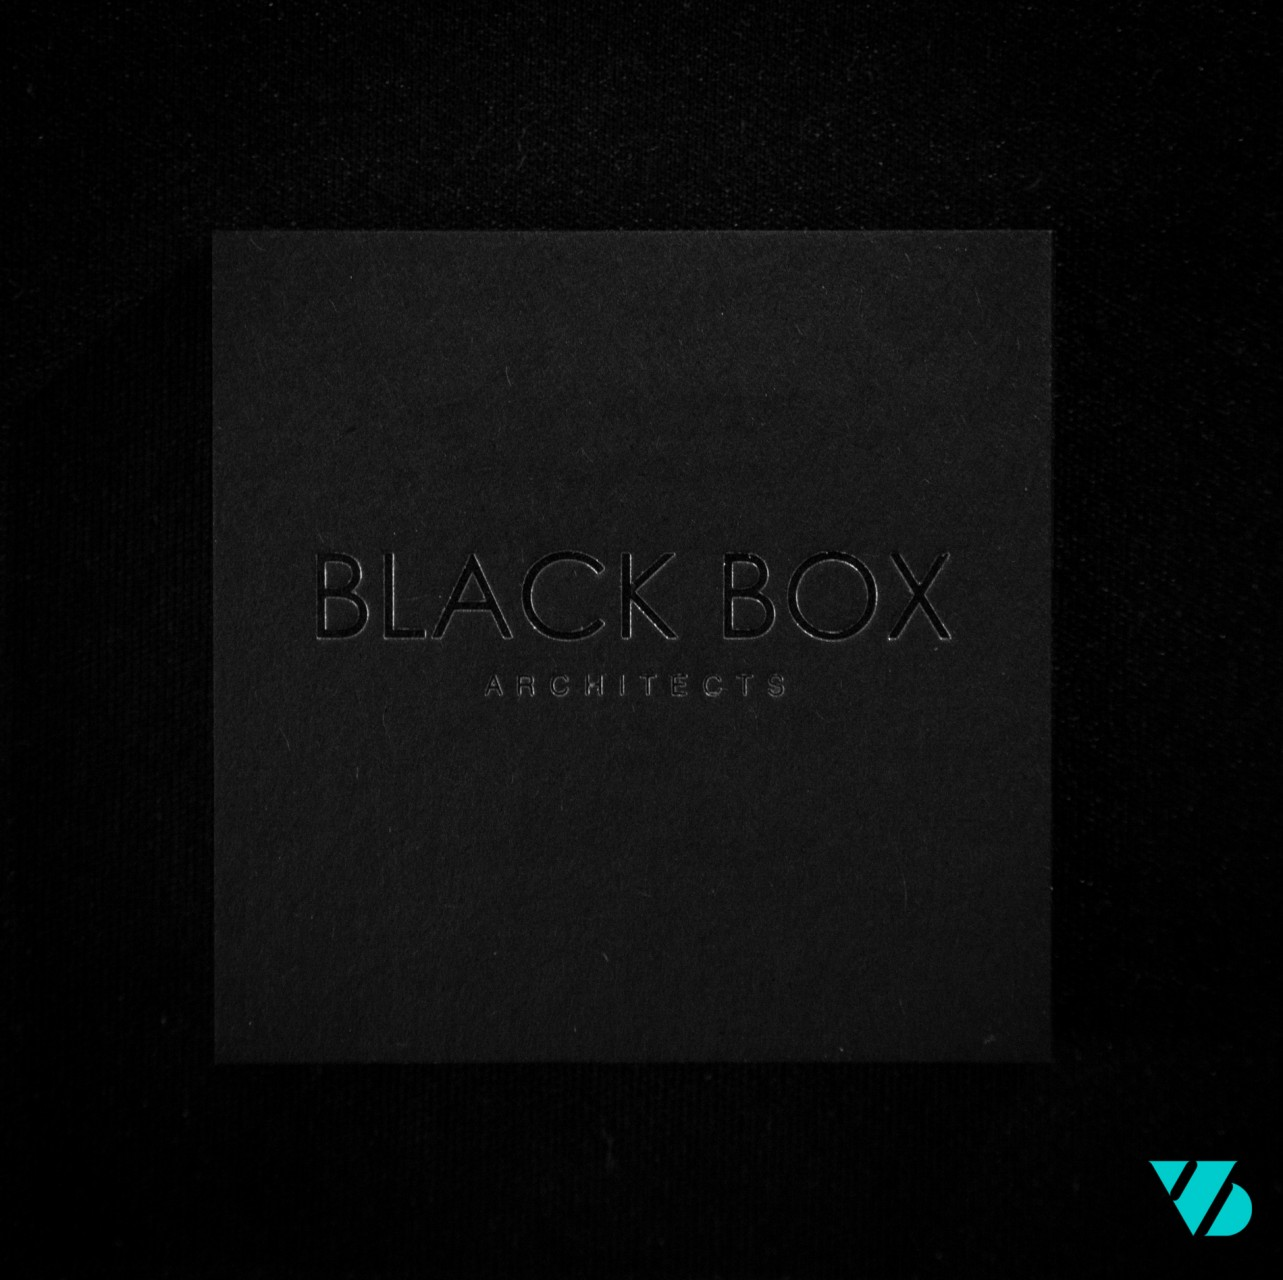 Blackbox business card square